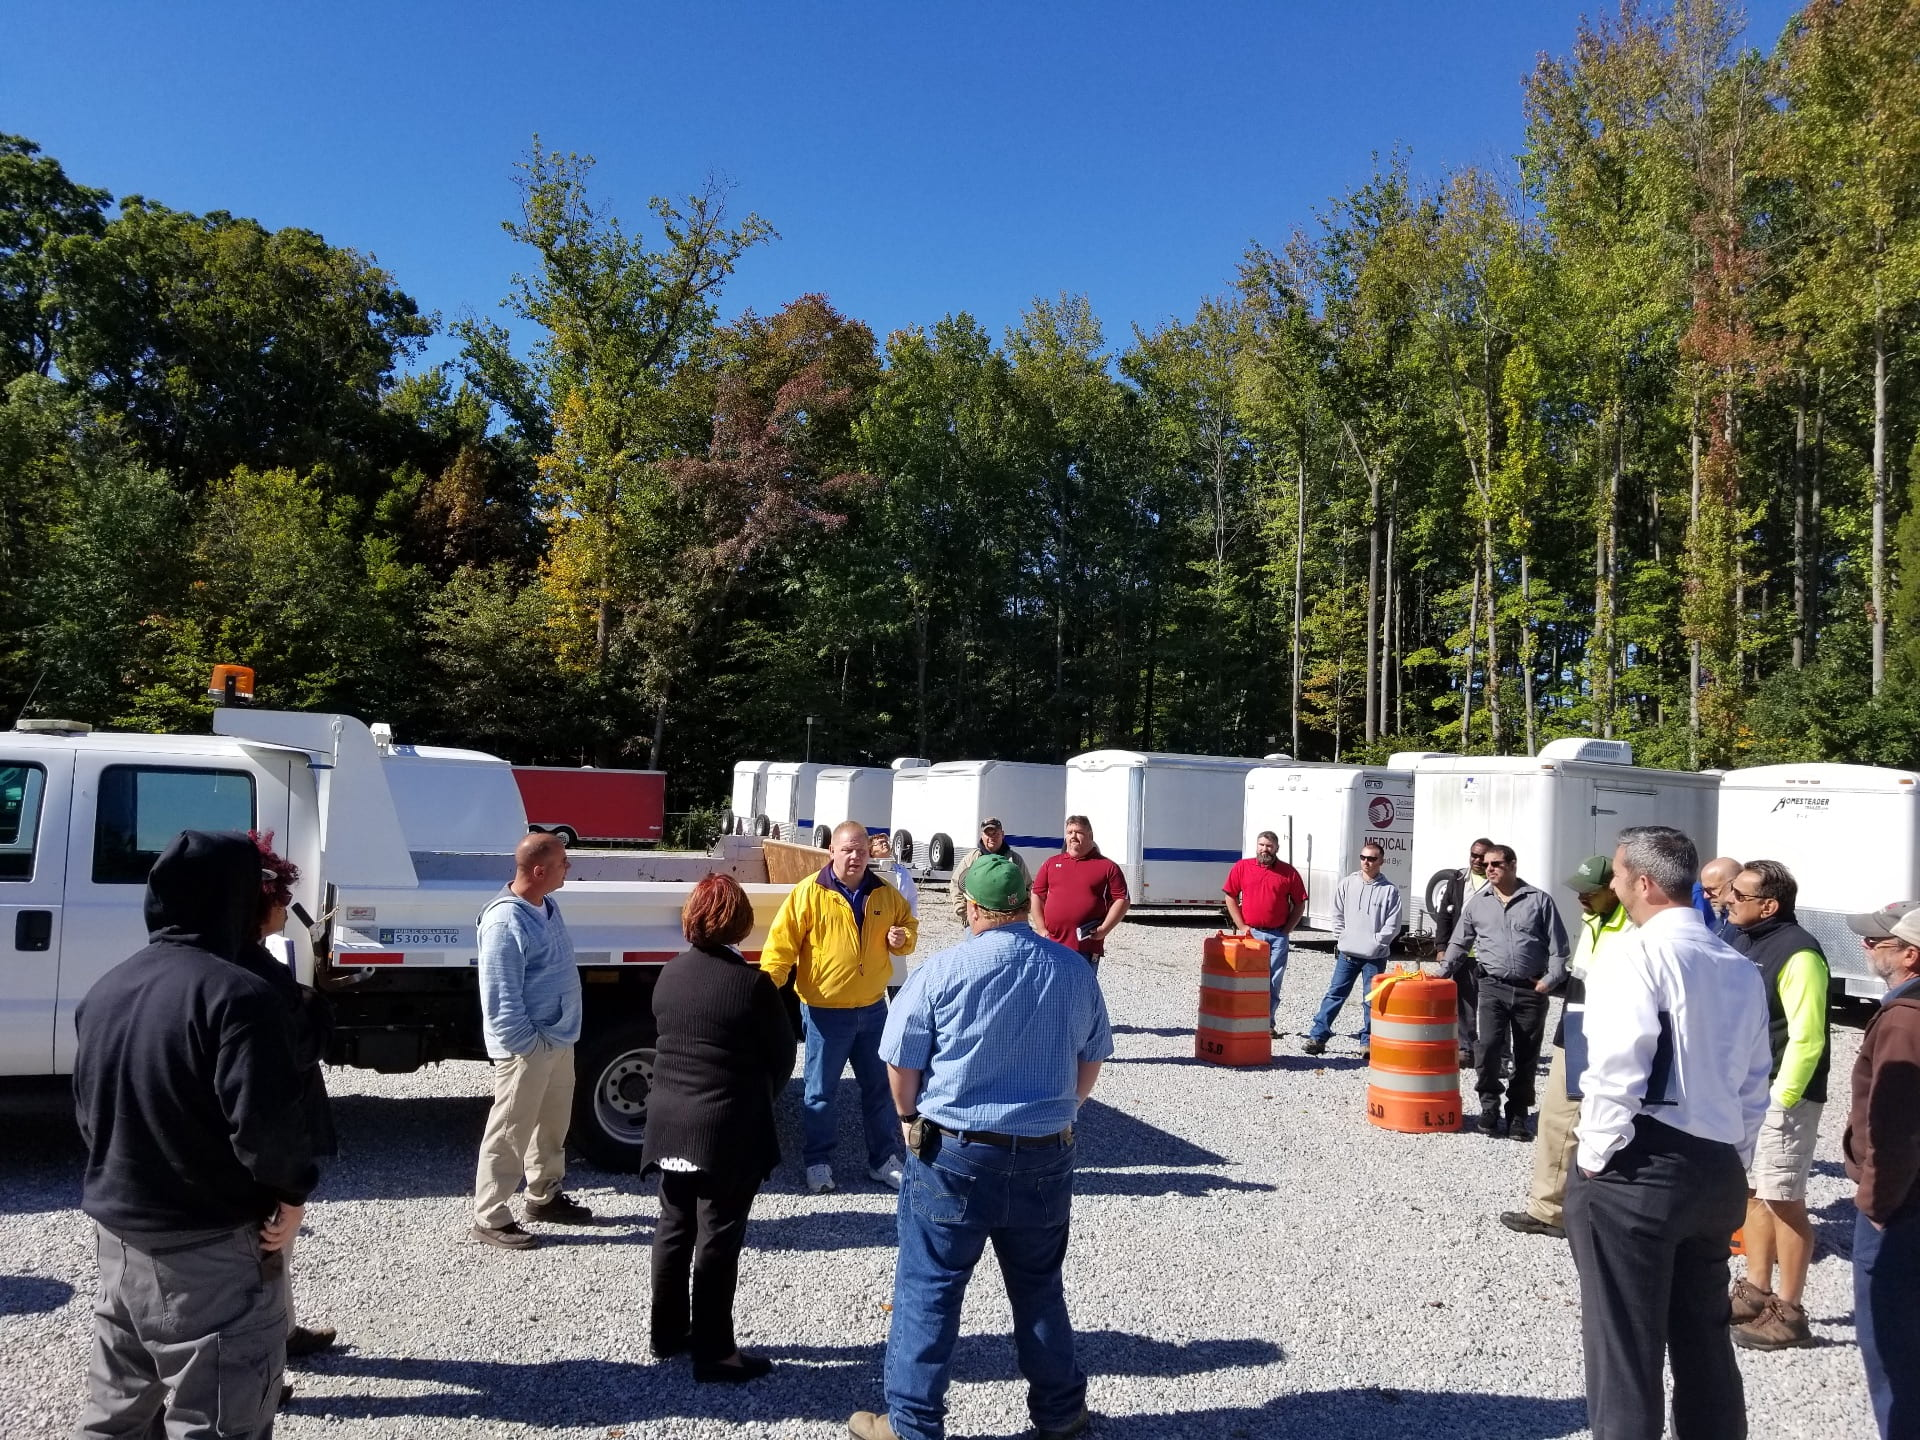 Equipment Visibility Safety Exercise Delaware Center For